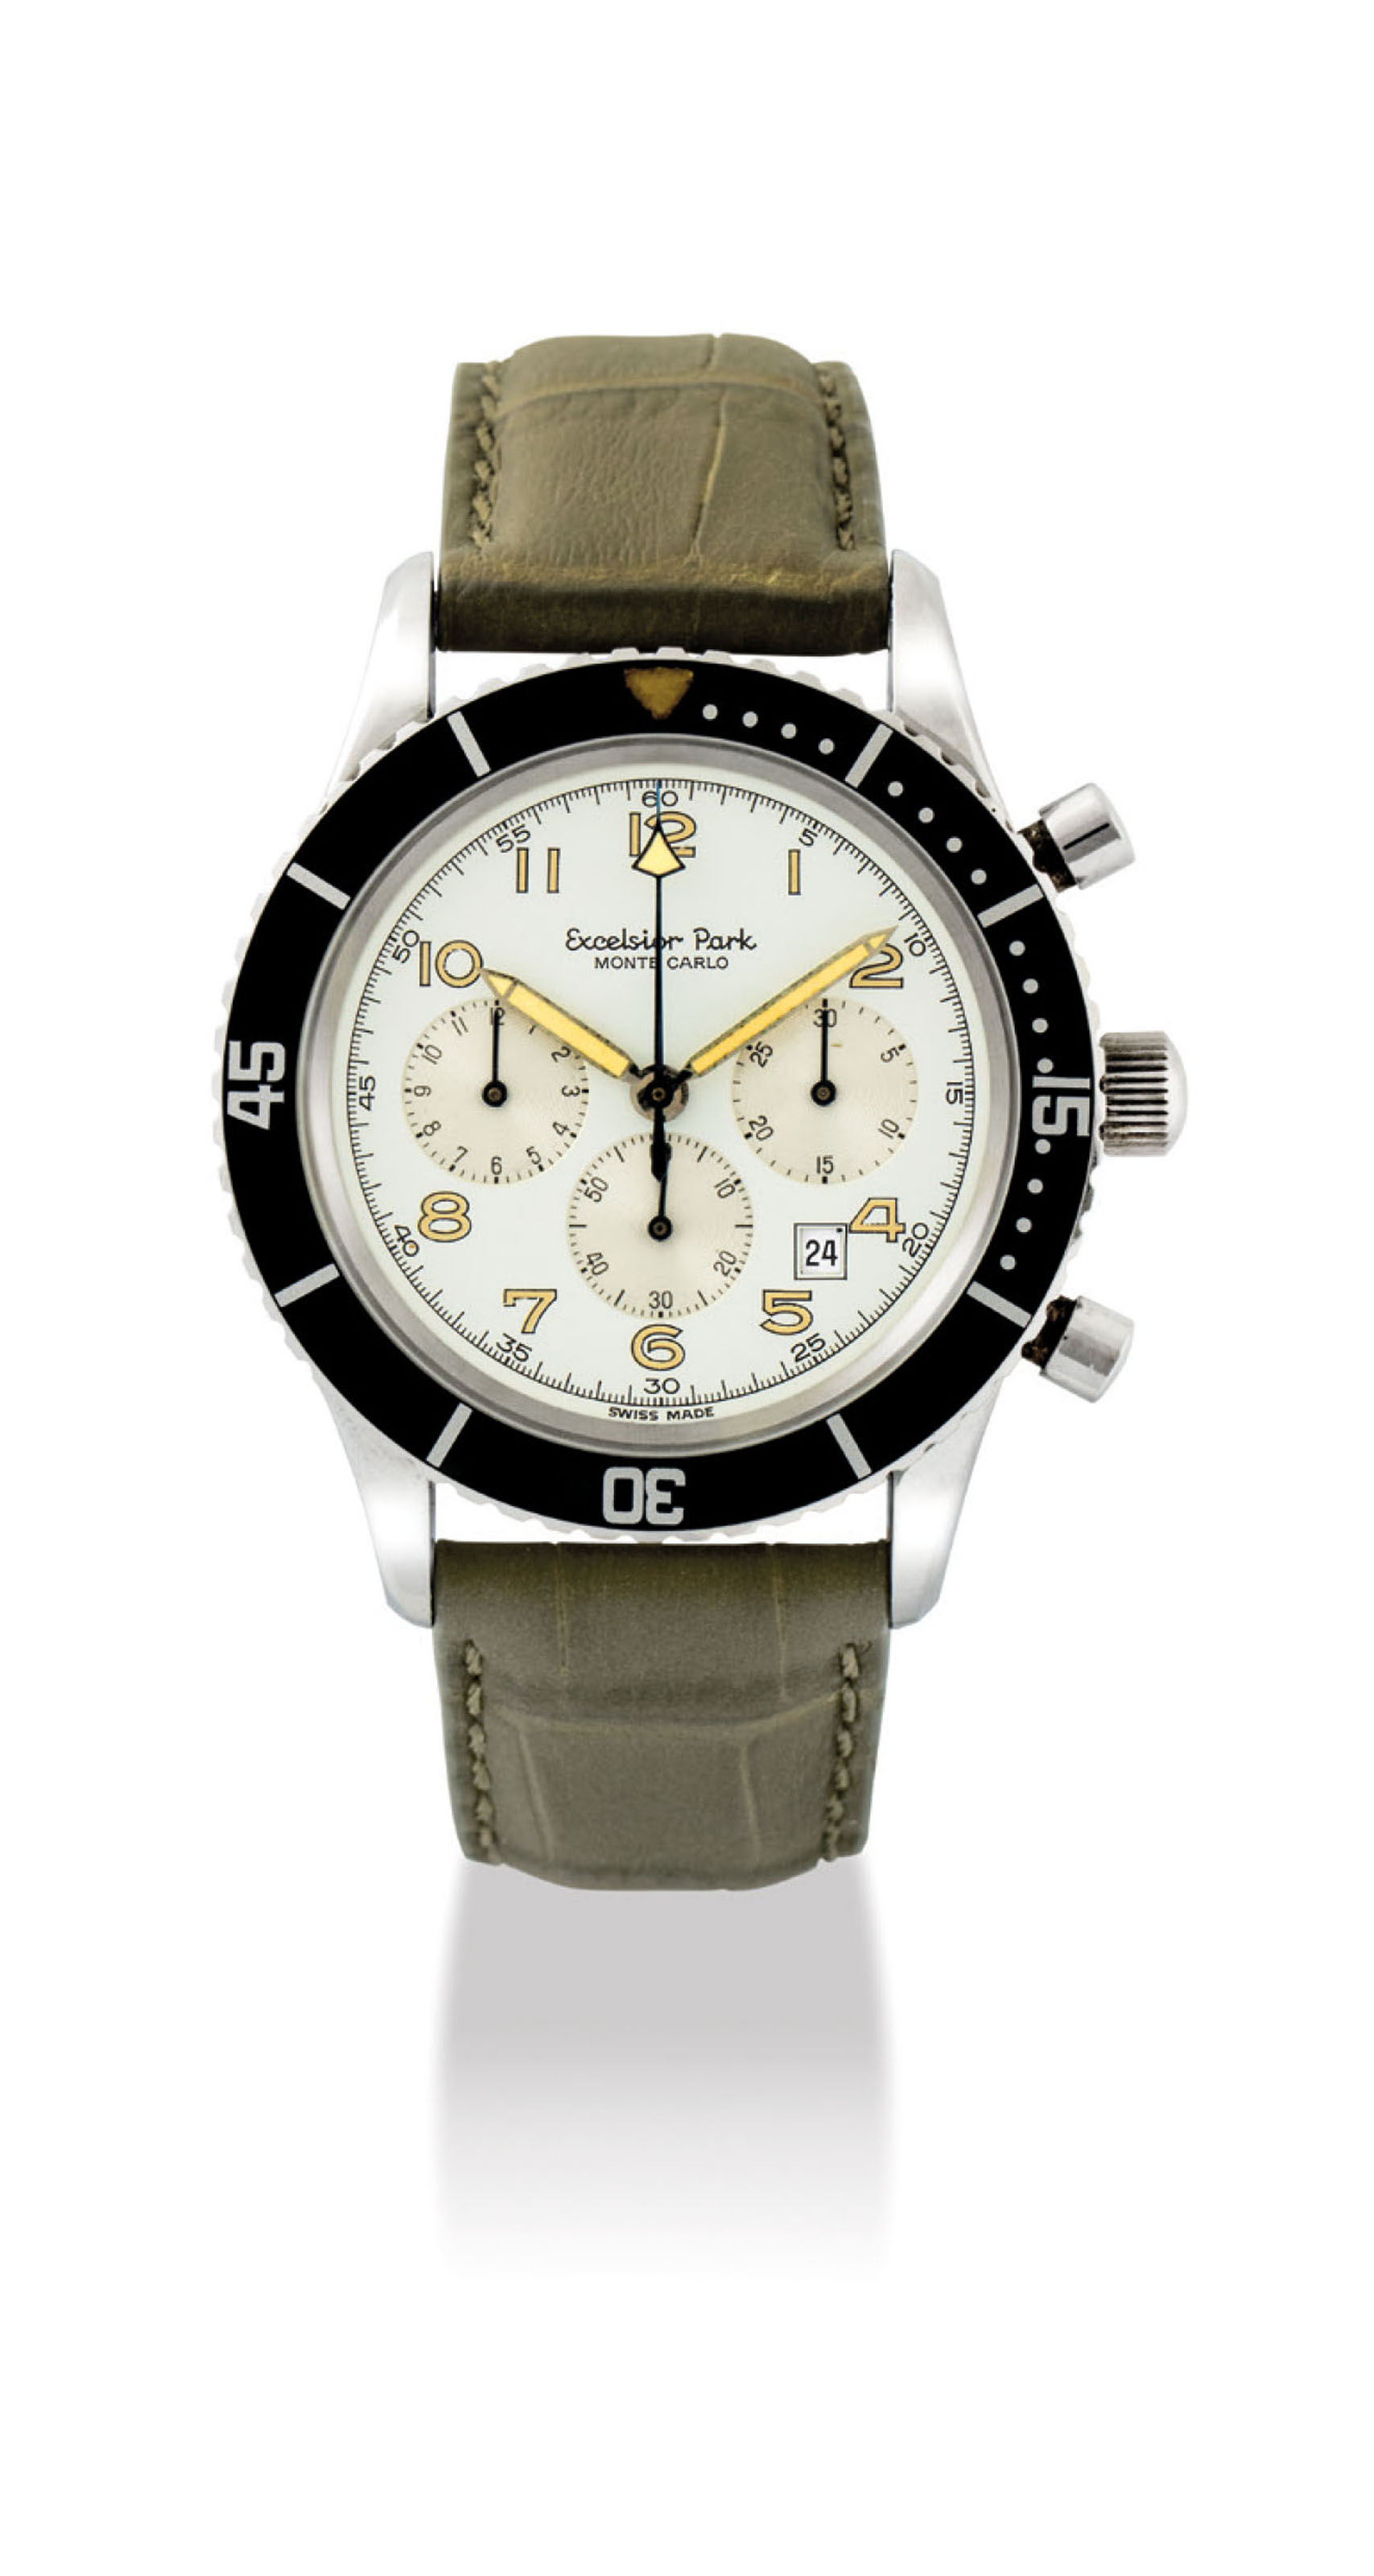 EXCELSIOR PARK. A STAINLESS STEEL CHRONOGRAPH WRISTWATCH WITH DATE